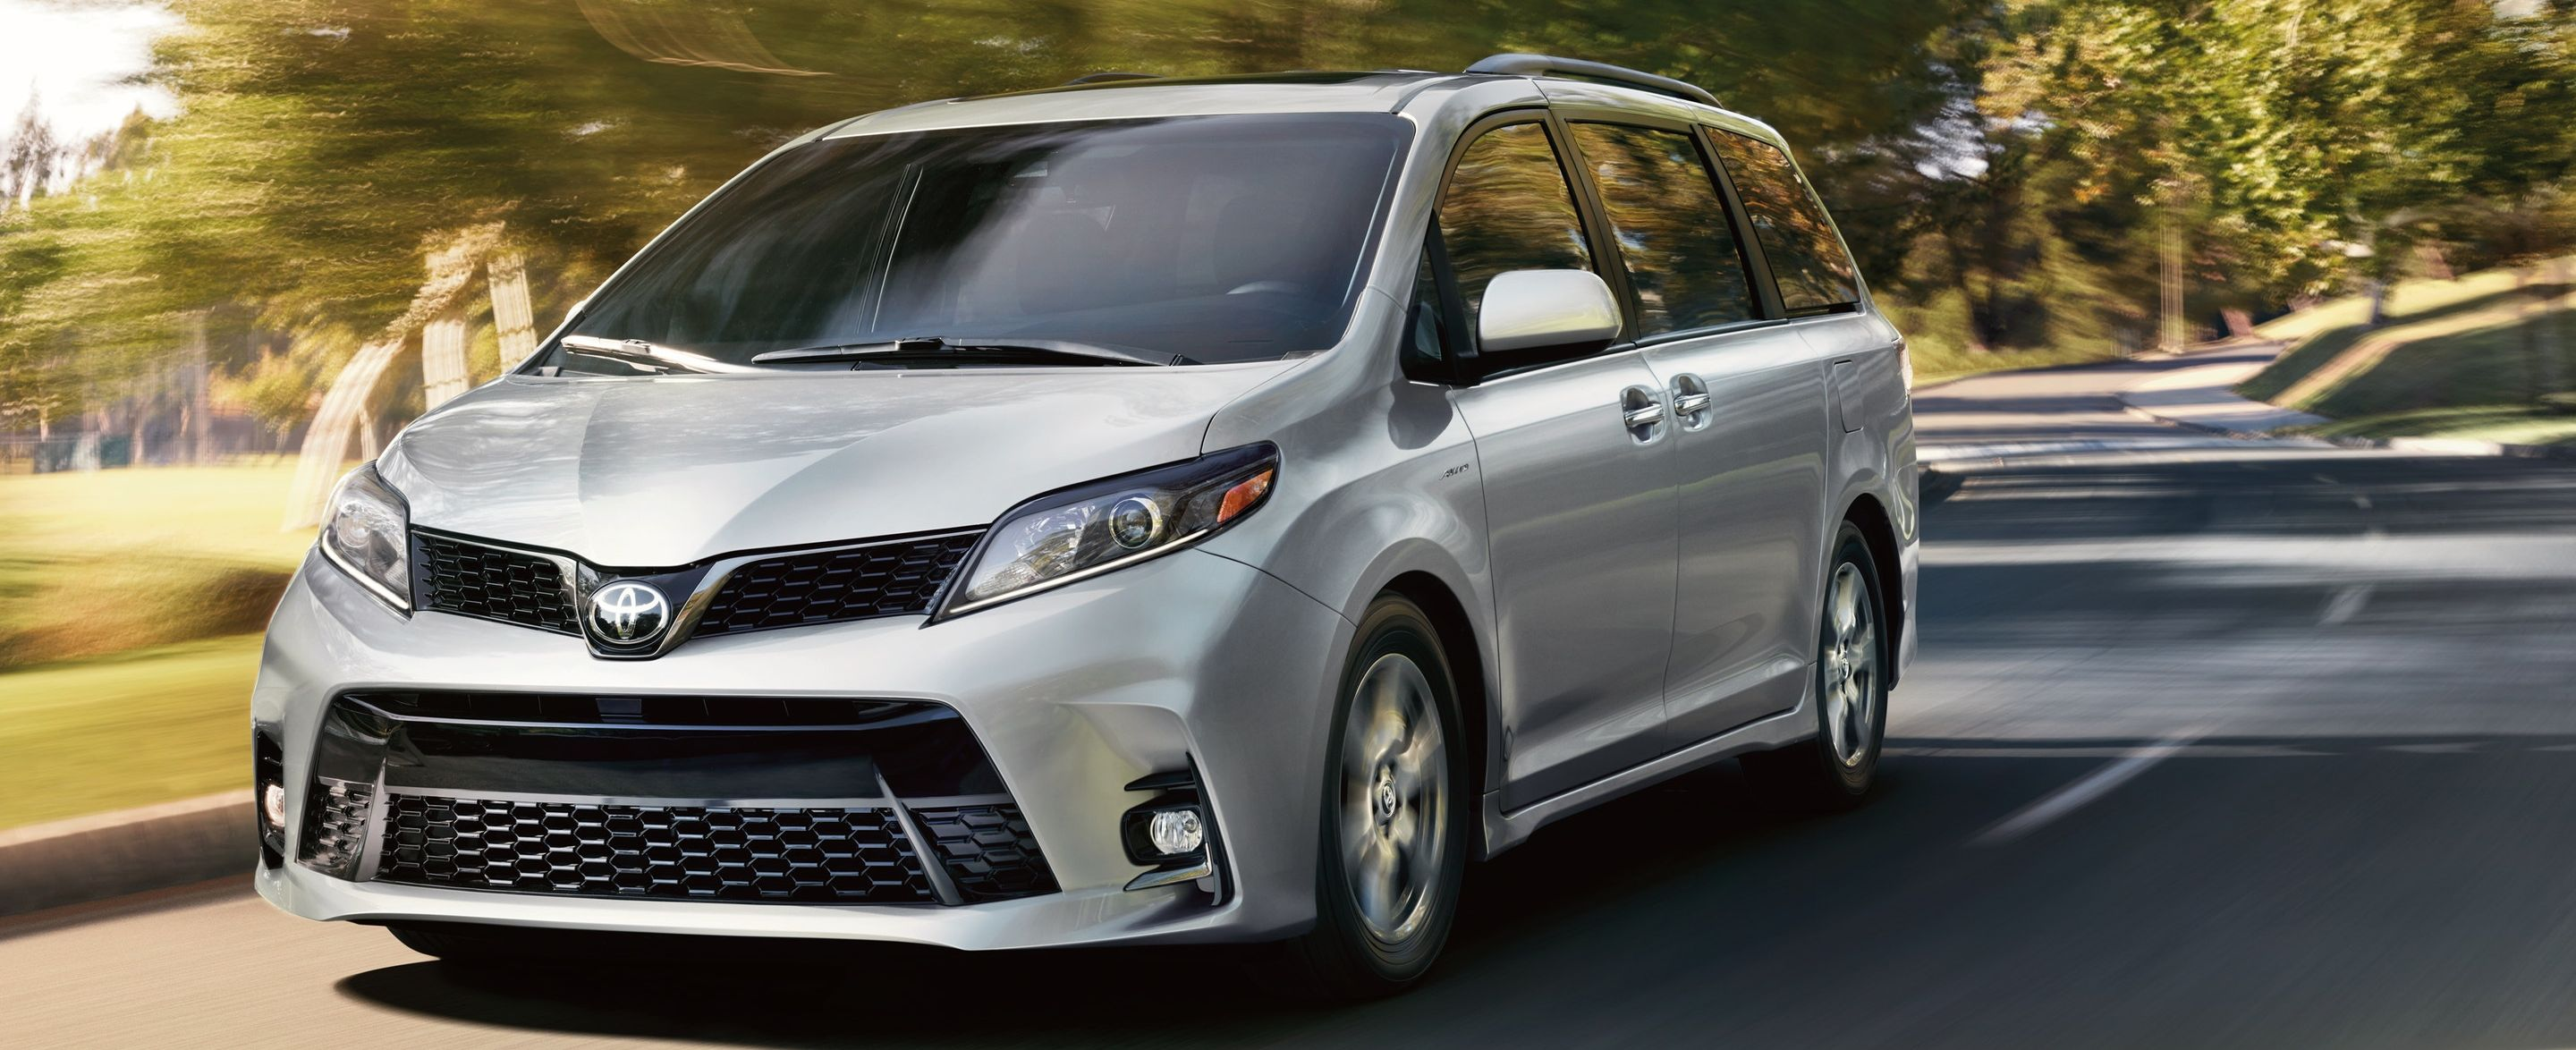 2020 Toyota Sienna for Sale near Cedar Rapids, IA